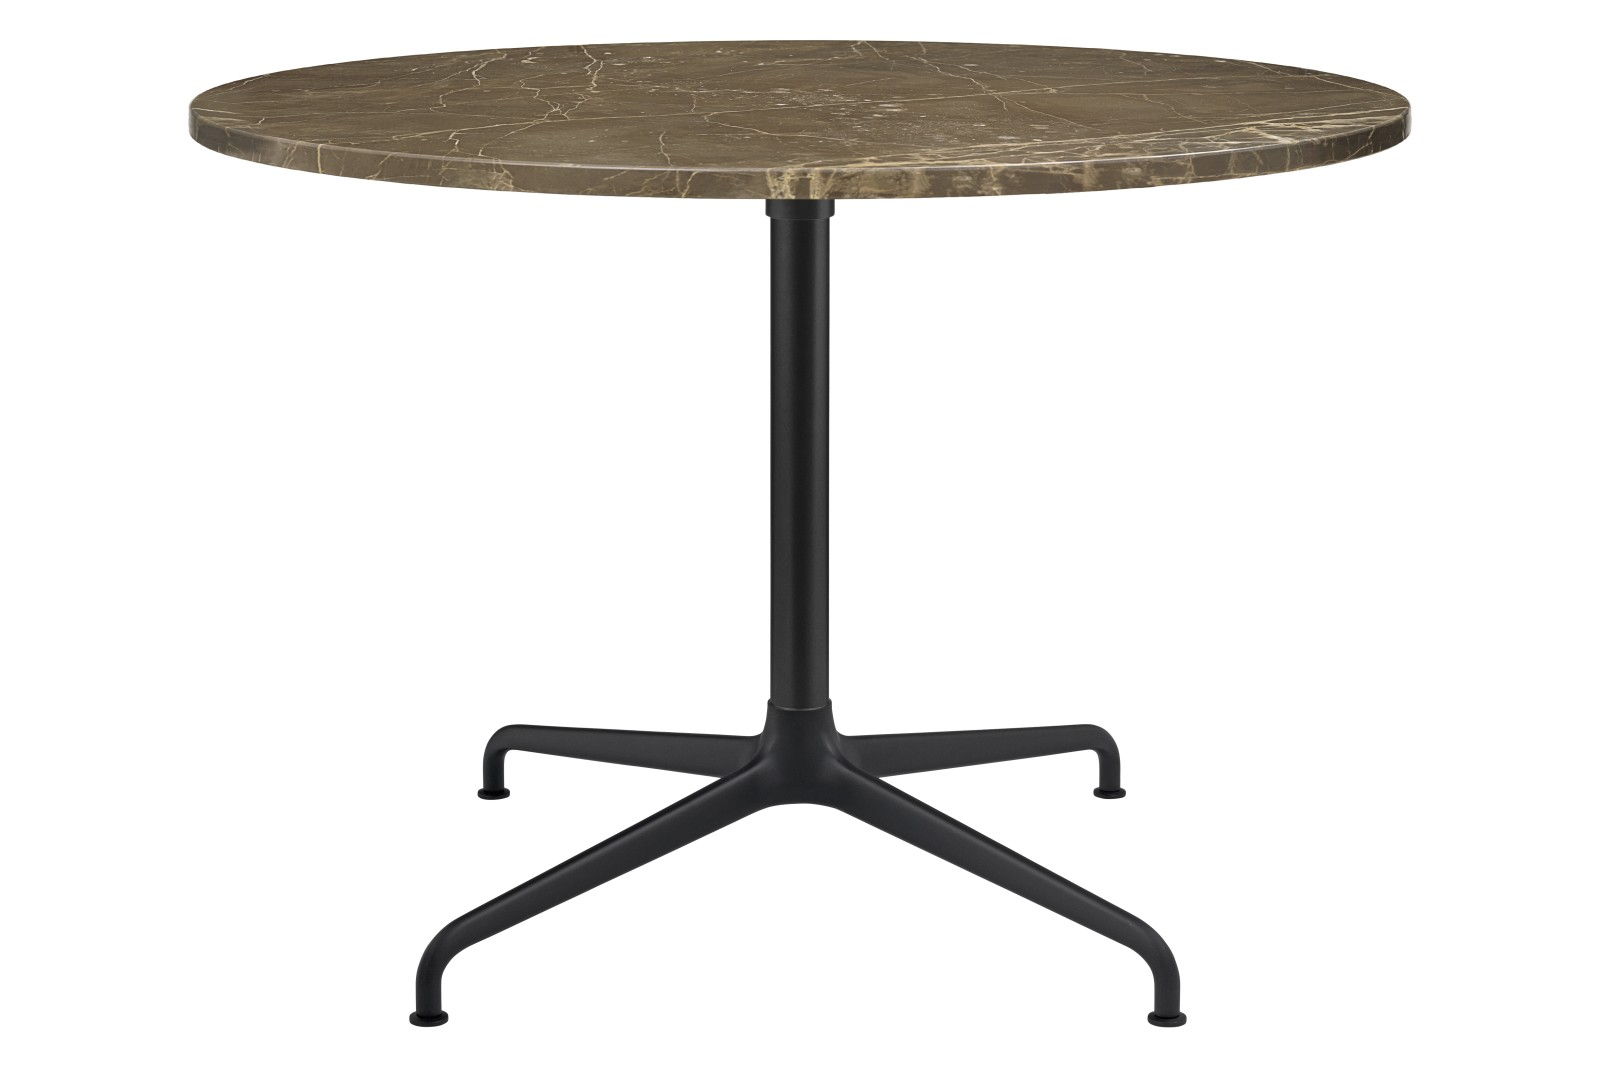 Beetle 4-Star Base Round Lounge Table, Large Gubi Metal Black Matt, Brown Emperador Marble